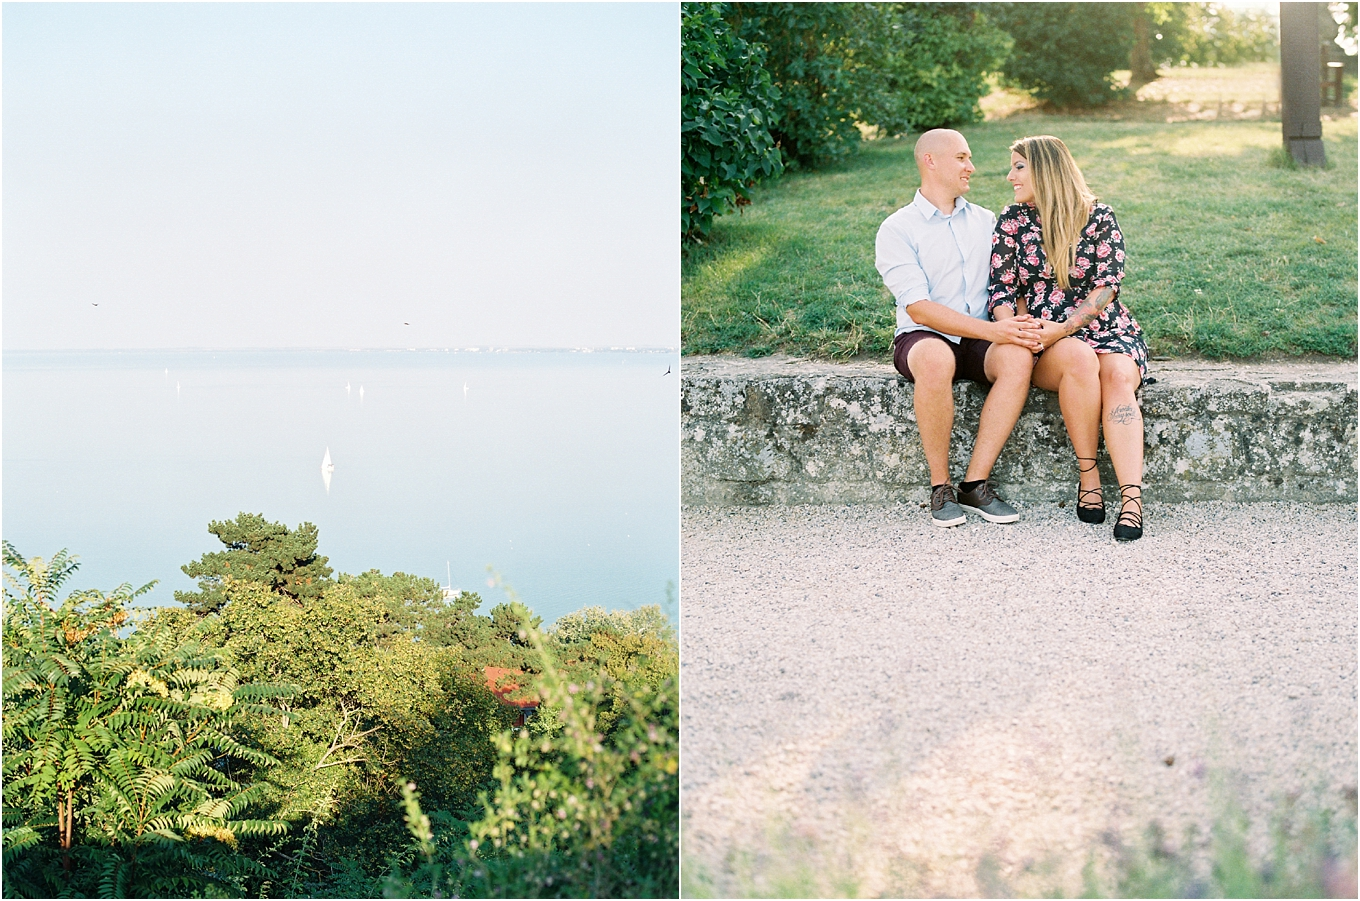 Lisa Silva Photography- Ponte Vedra Beach, St. Augustine and Jacksonville, Florida Fine Art Film Wedding and Boudoir Photography- Engagement Session in Tihany, Hungary- Destination Wedding Photographer_0055.jpg